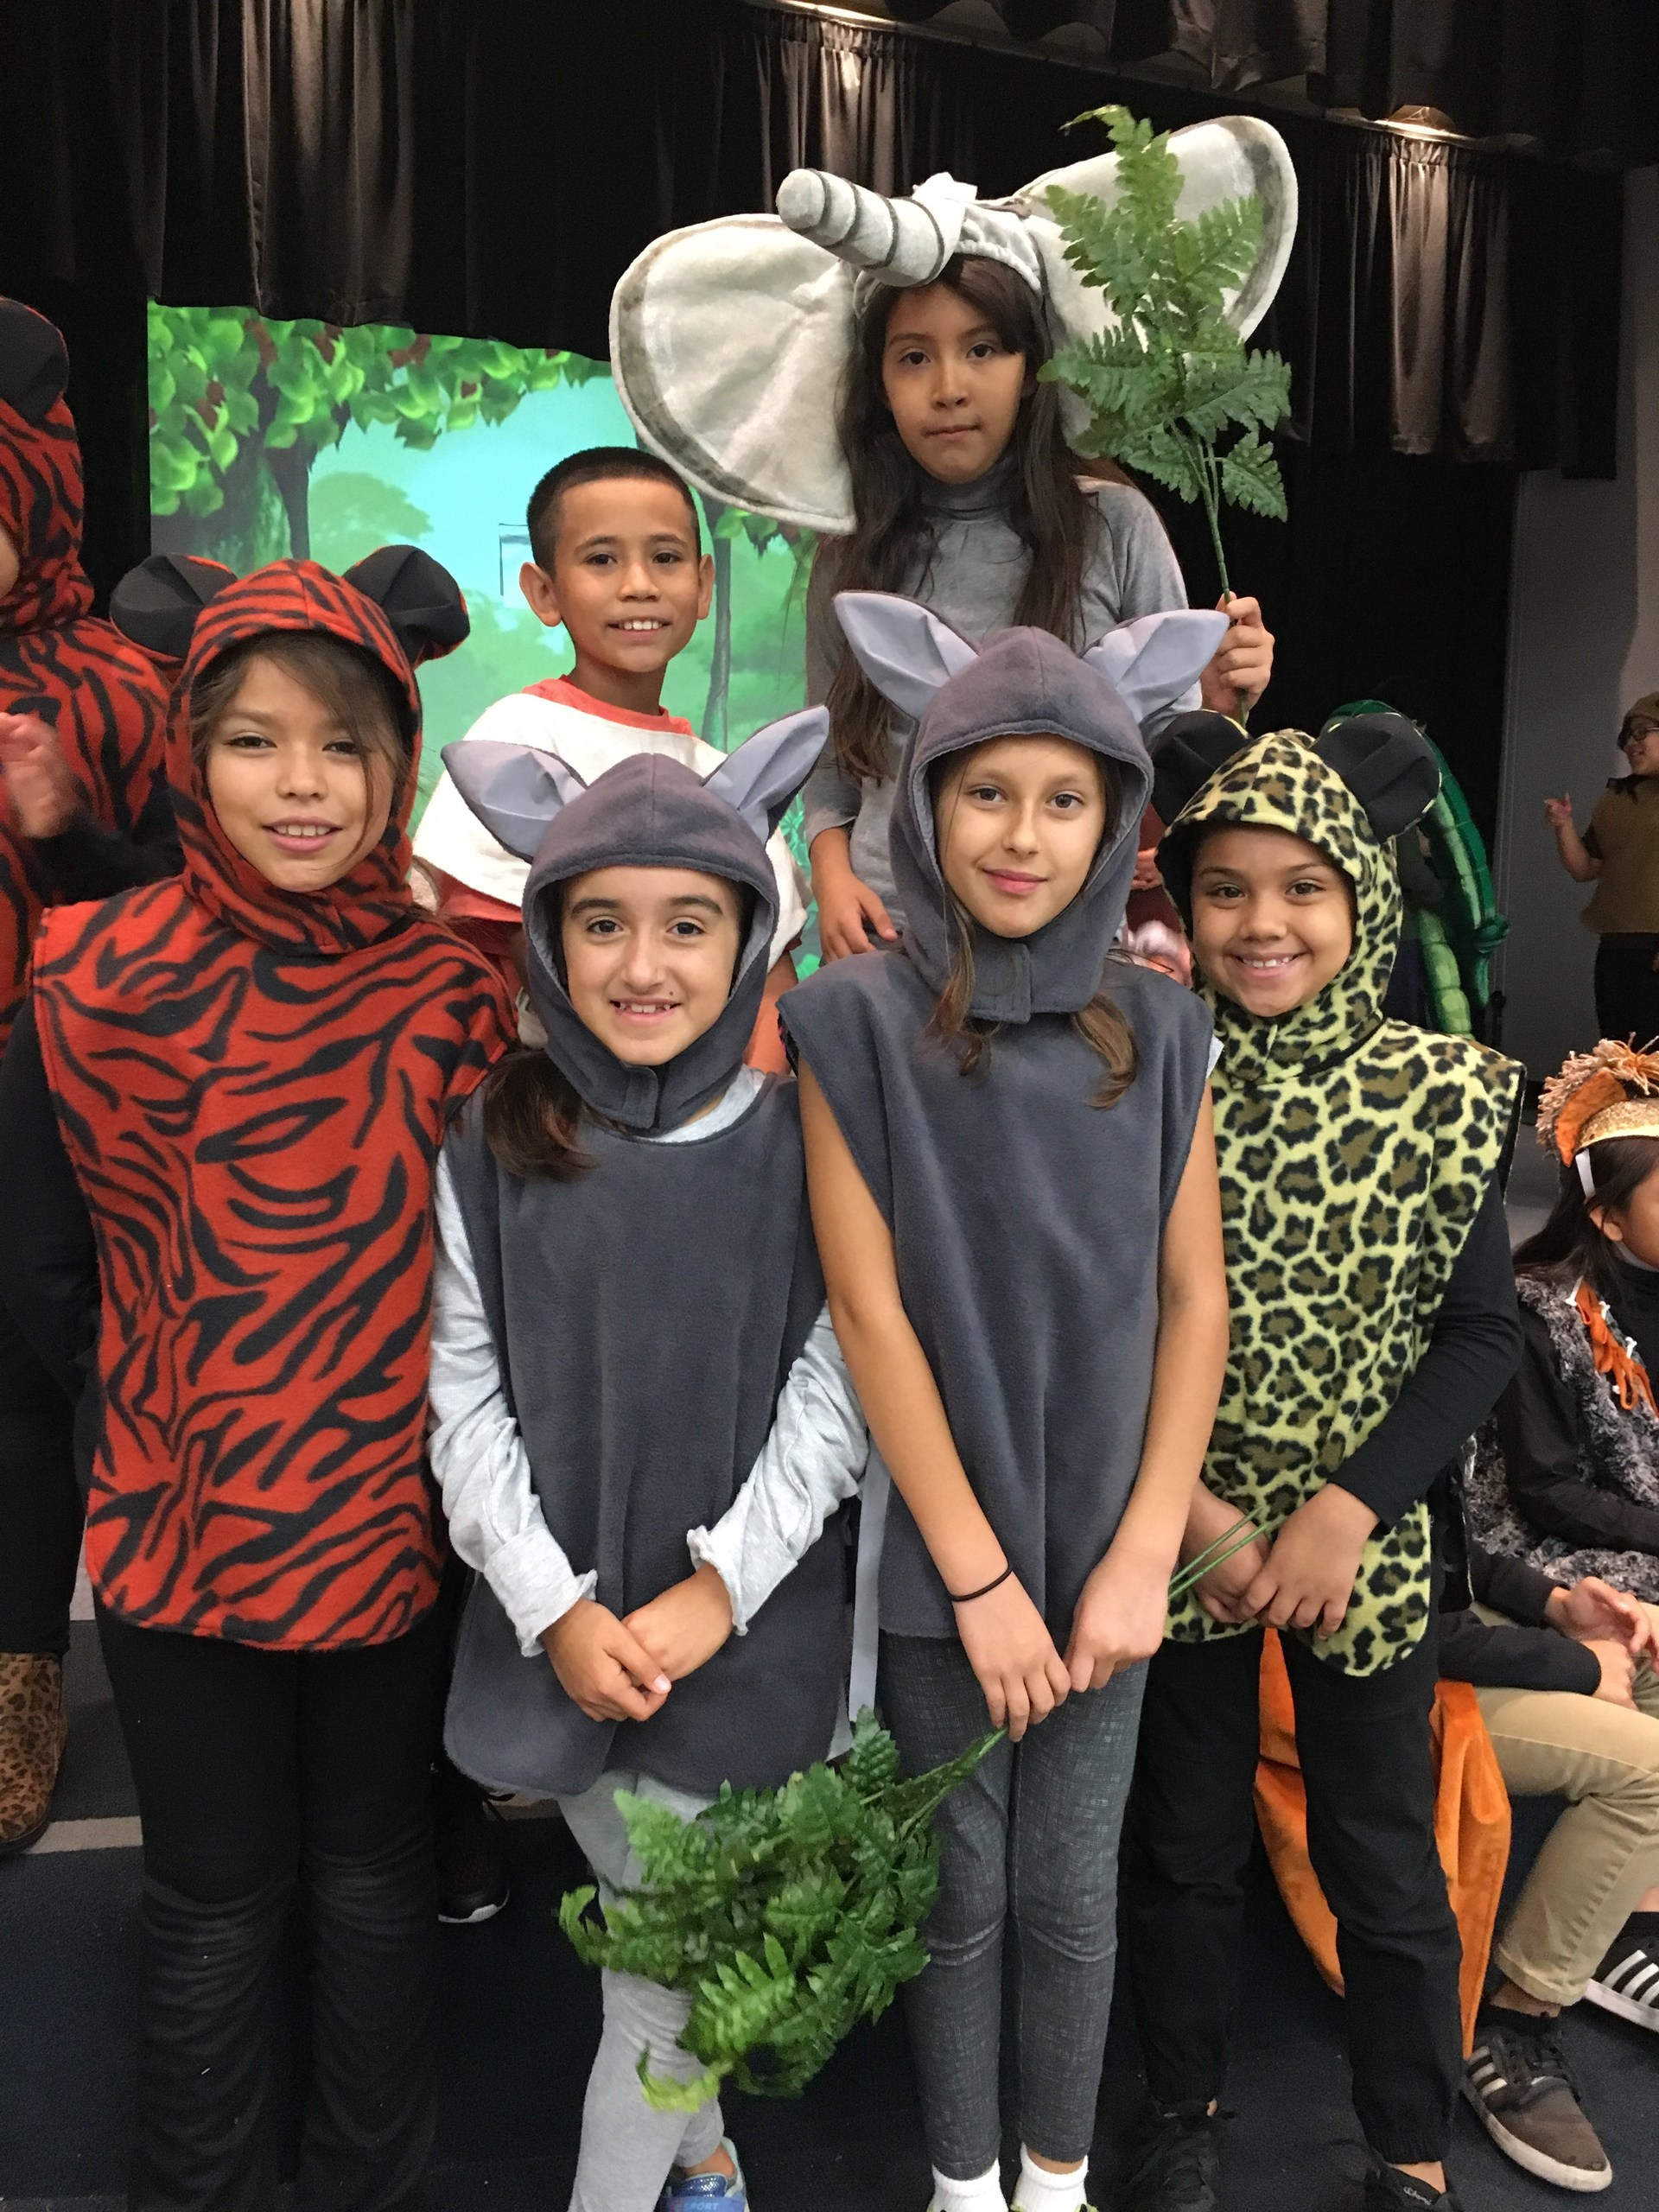 Students in animal costume in the show Jungle Book.